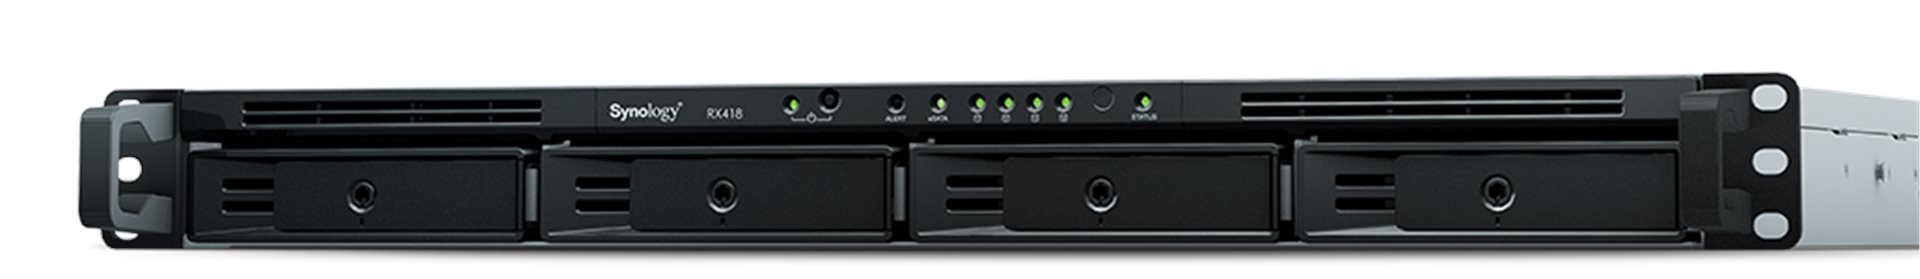 Synology RX418